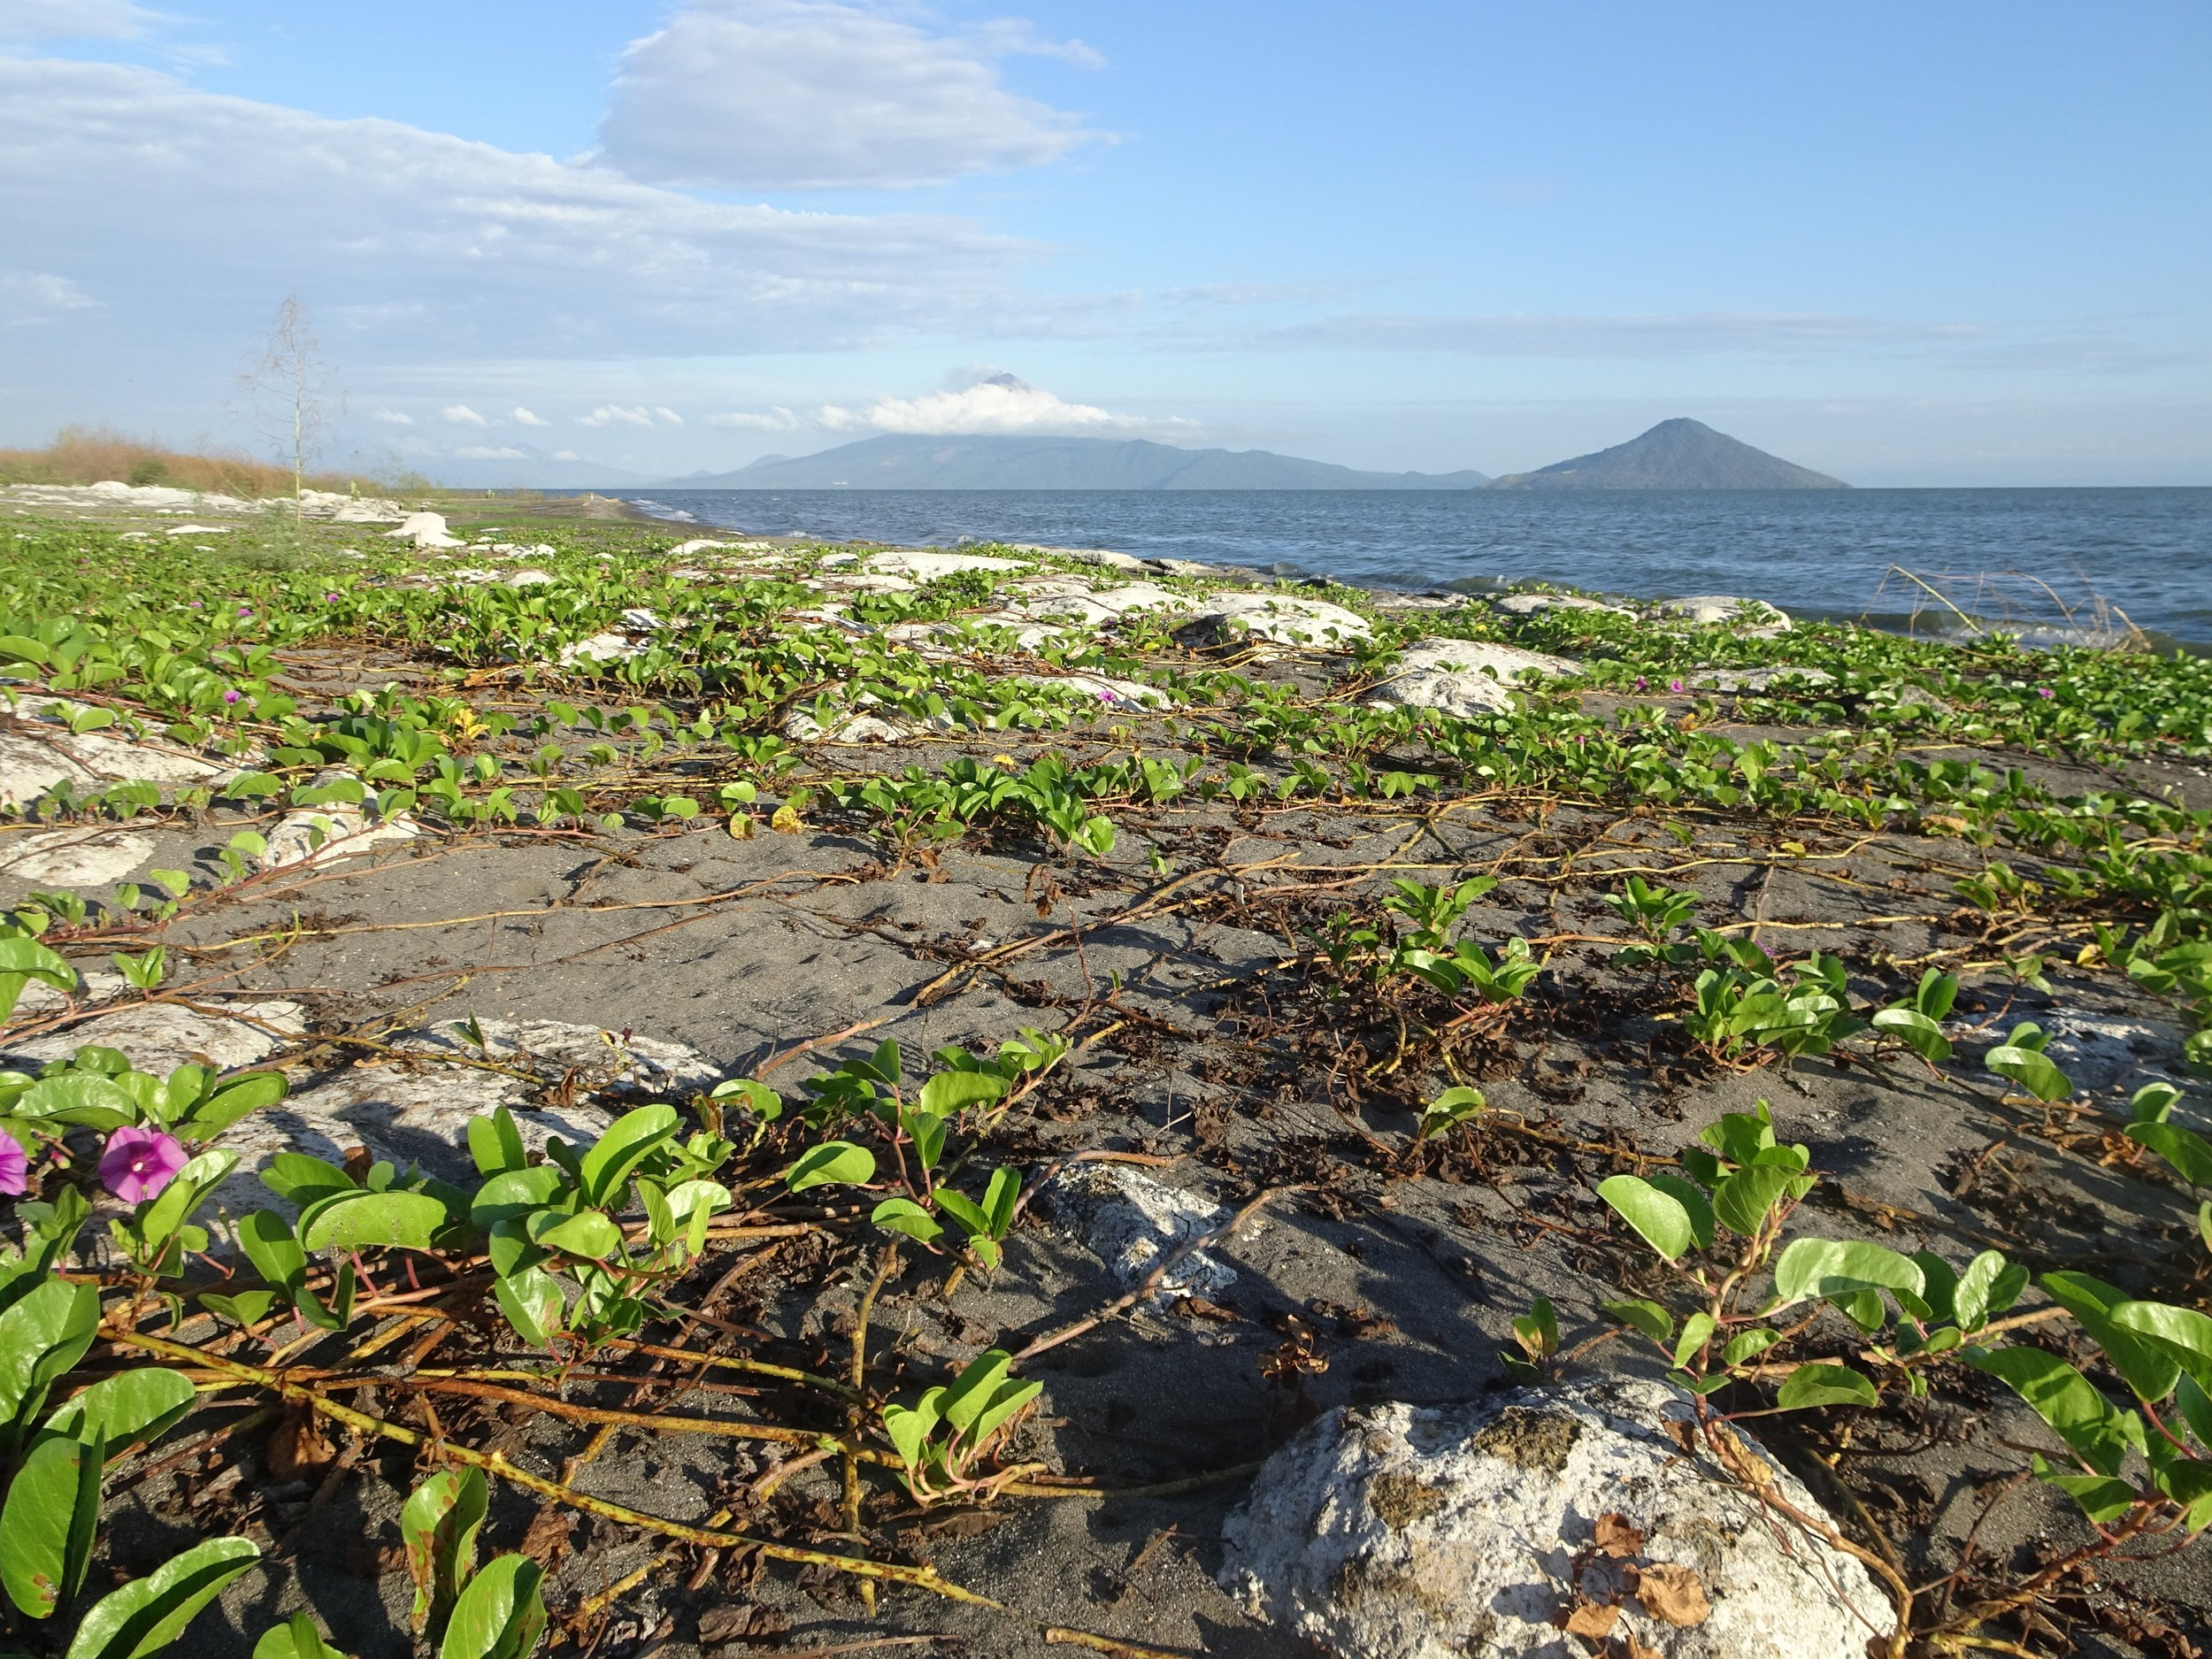 A volcanic view along the shores of Lake Managua (Lake Xolotlán) en route to the city of León.   Photo by Heather Mundt.